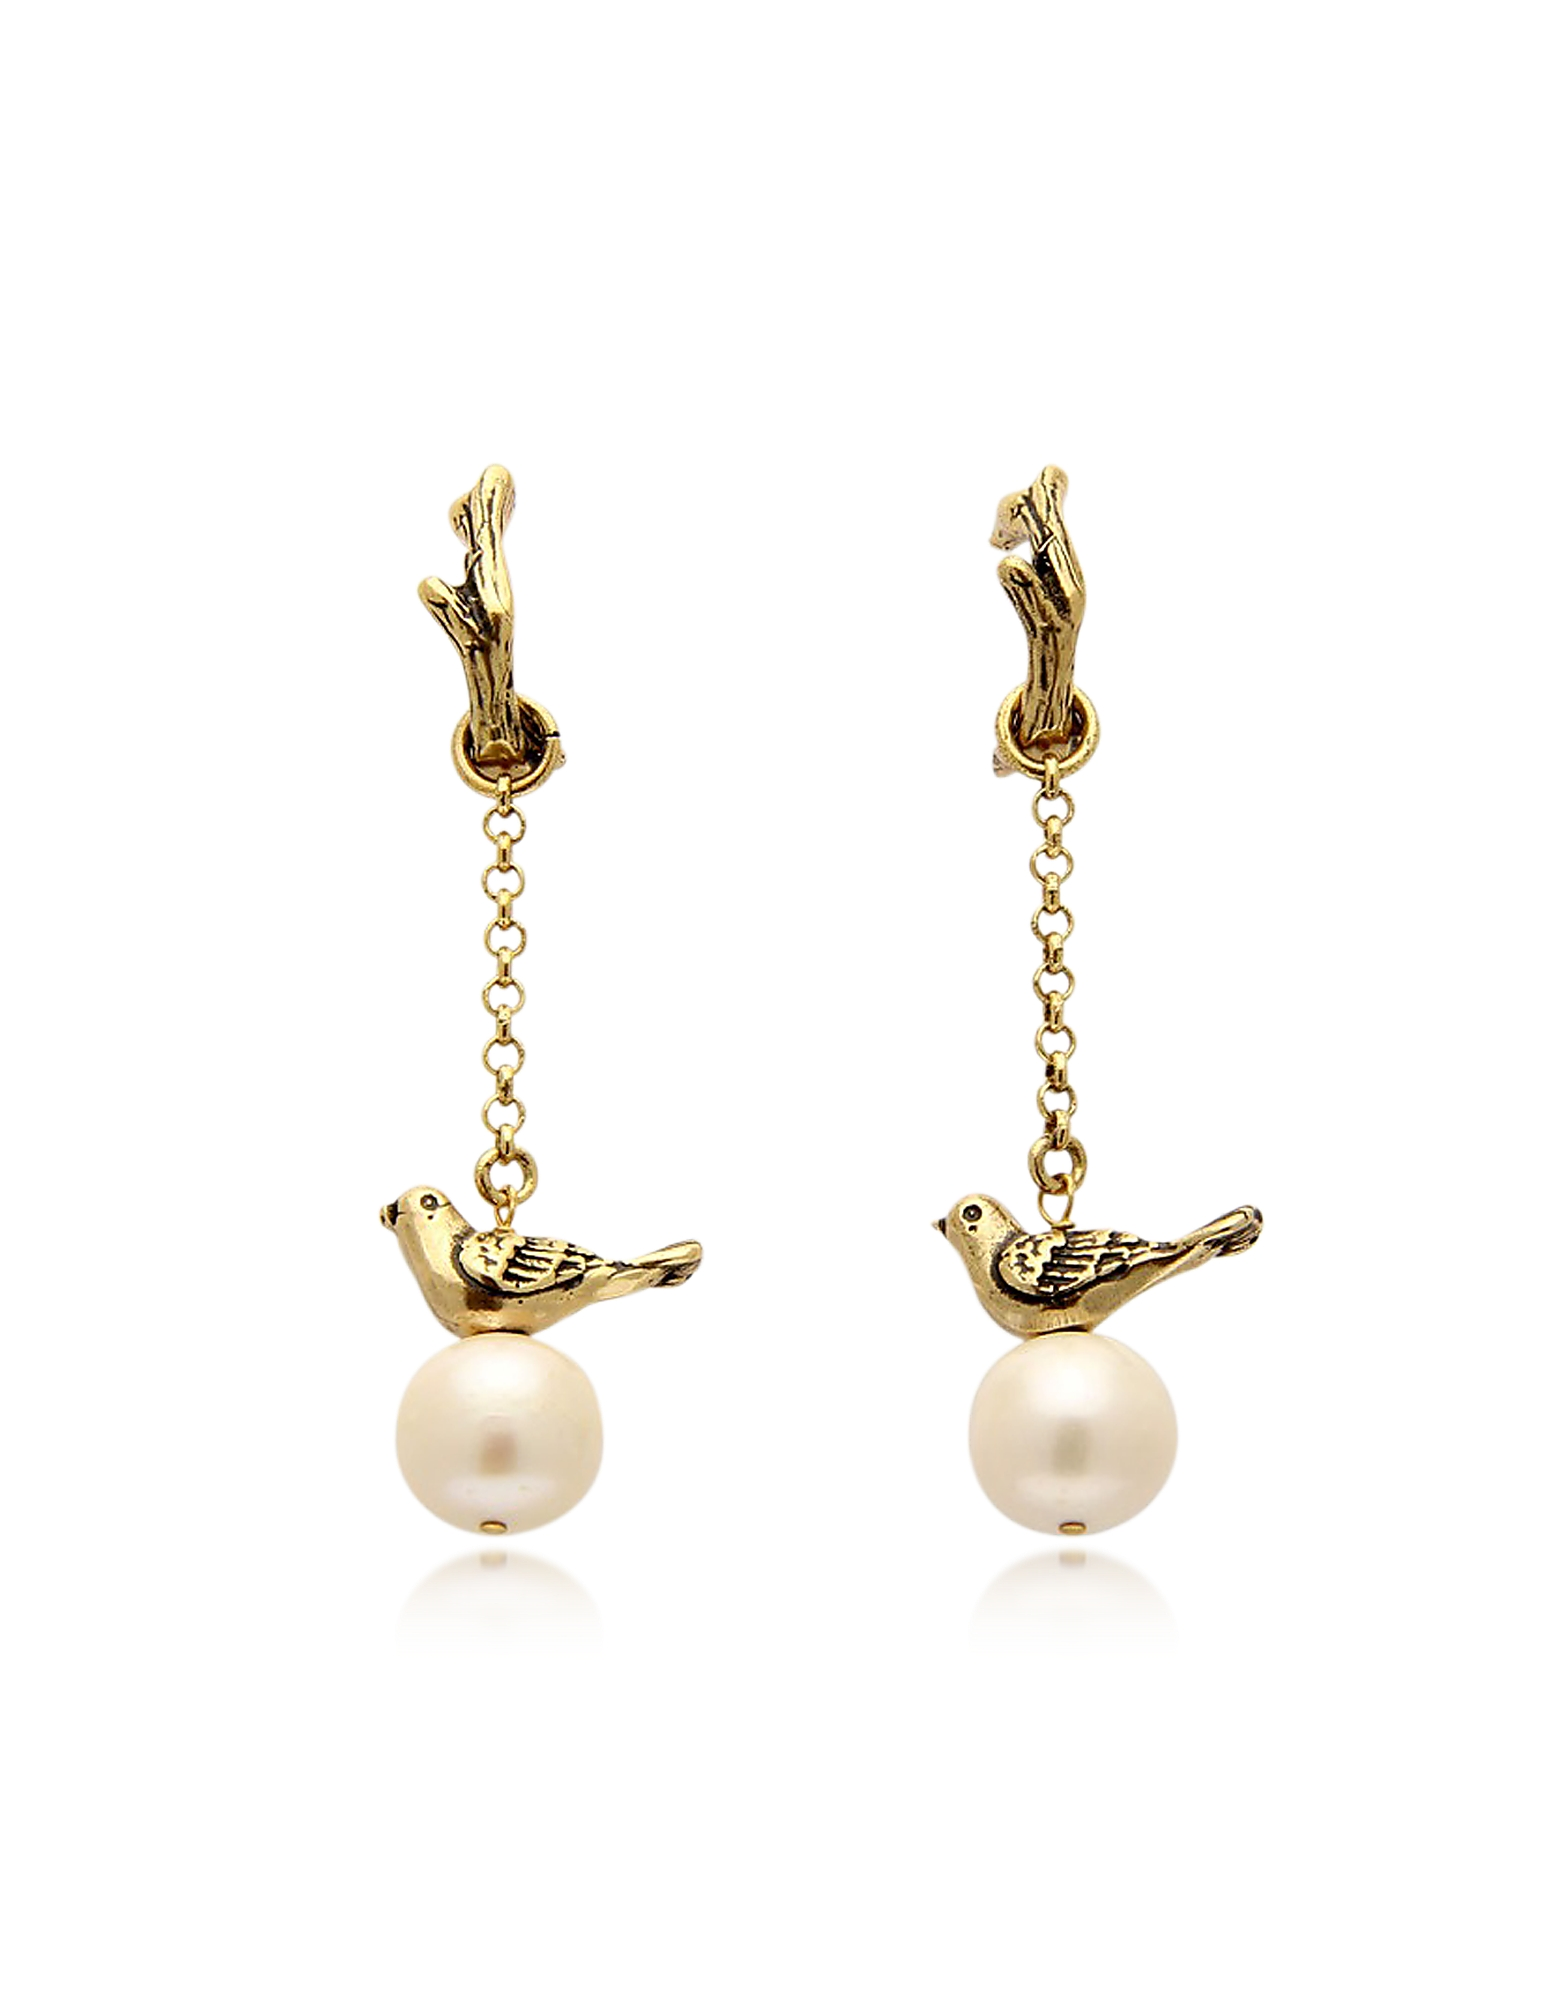 Alcozer & J Earrings, Treasure Goldtone Brass and Glass Pearls Earrings